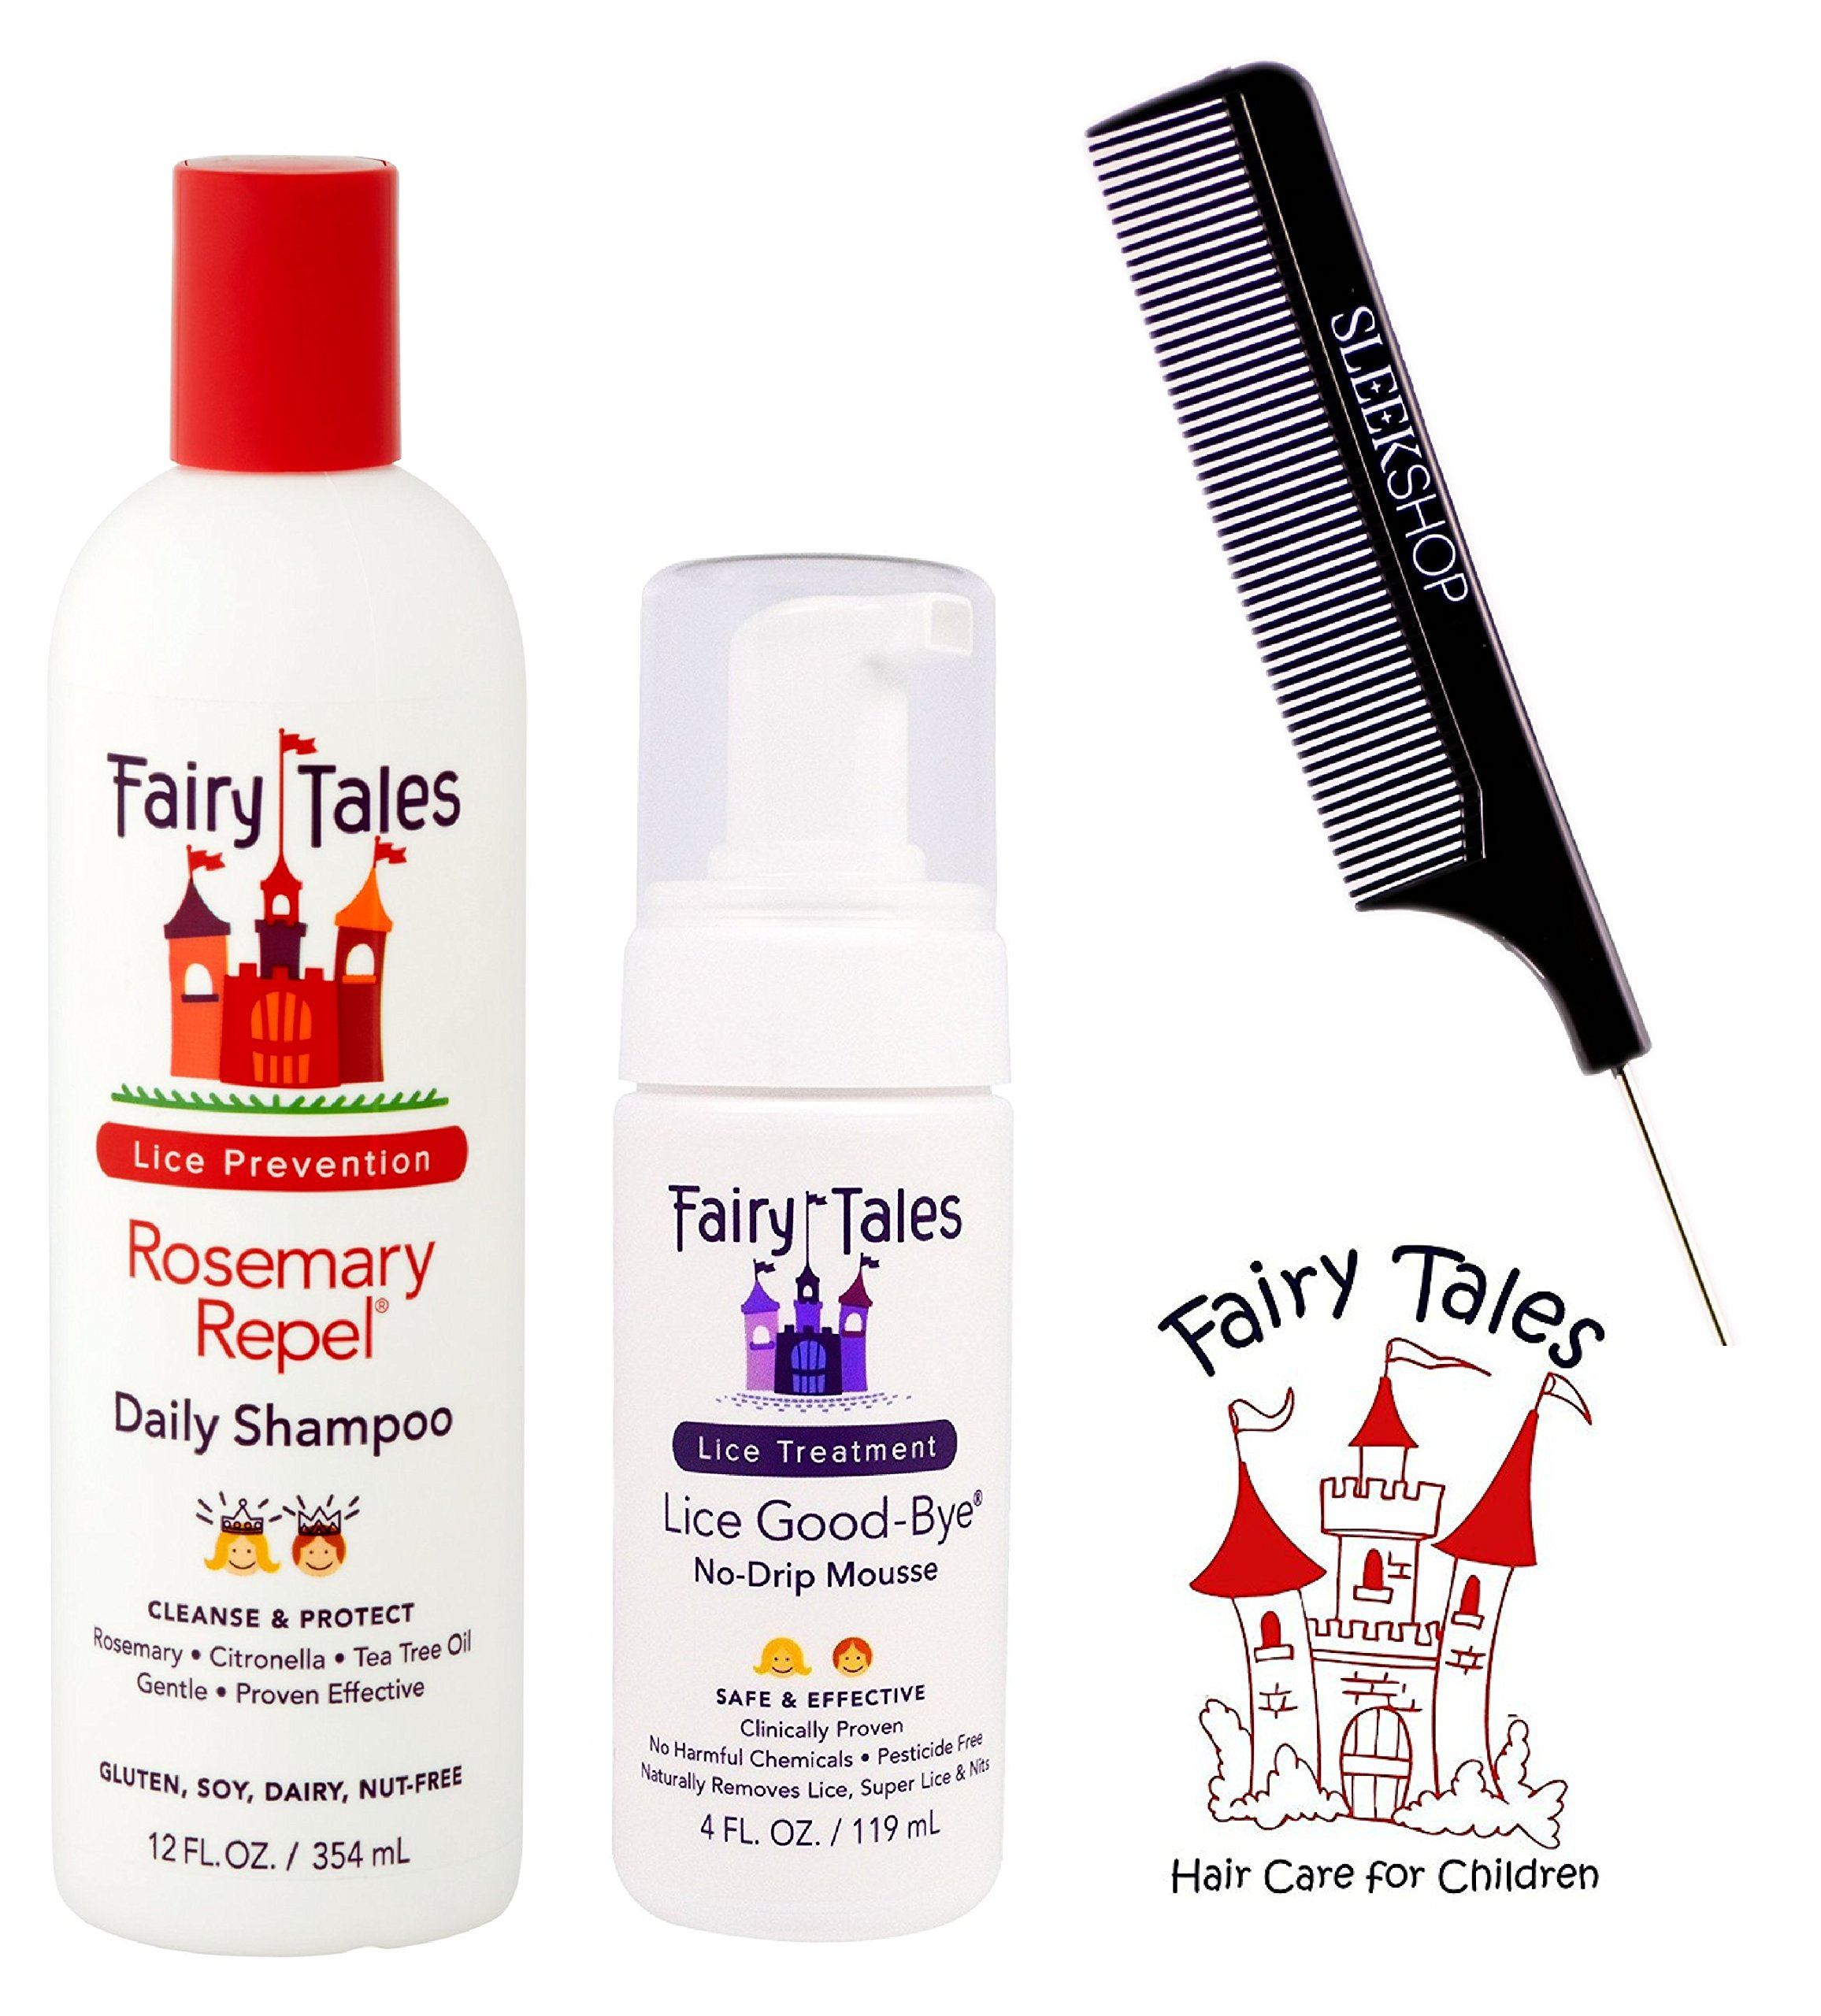 Fairy Tales Rosemary Repel DAILY SHAMPOO & LICE GOOD-BYE No-Drip (with Sleek Steel Pin Tail Comb) (12 oz + 4 oz - retail DUO kit) by Lice Shampoo and Good Bye by Fairy Tales